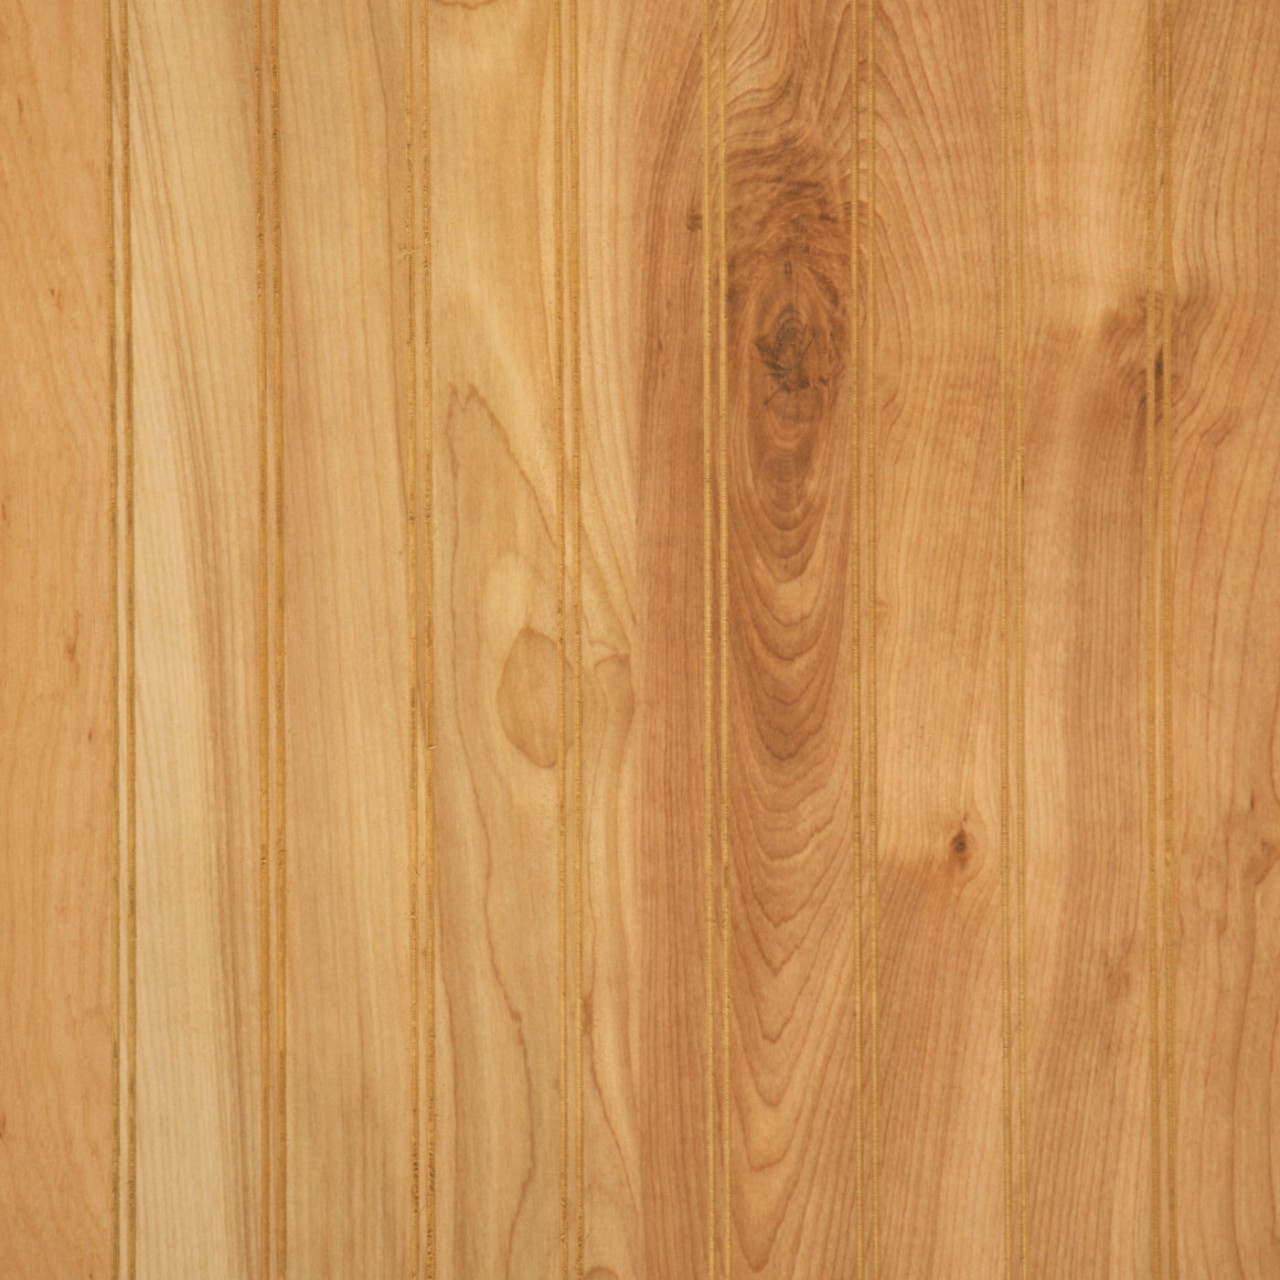 Natural Birch Beadboard Paneling | Woodgrain Finish Panels